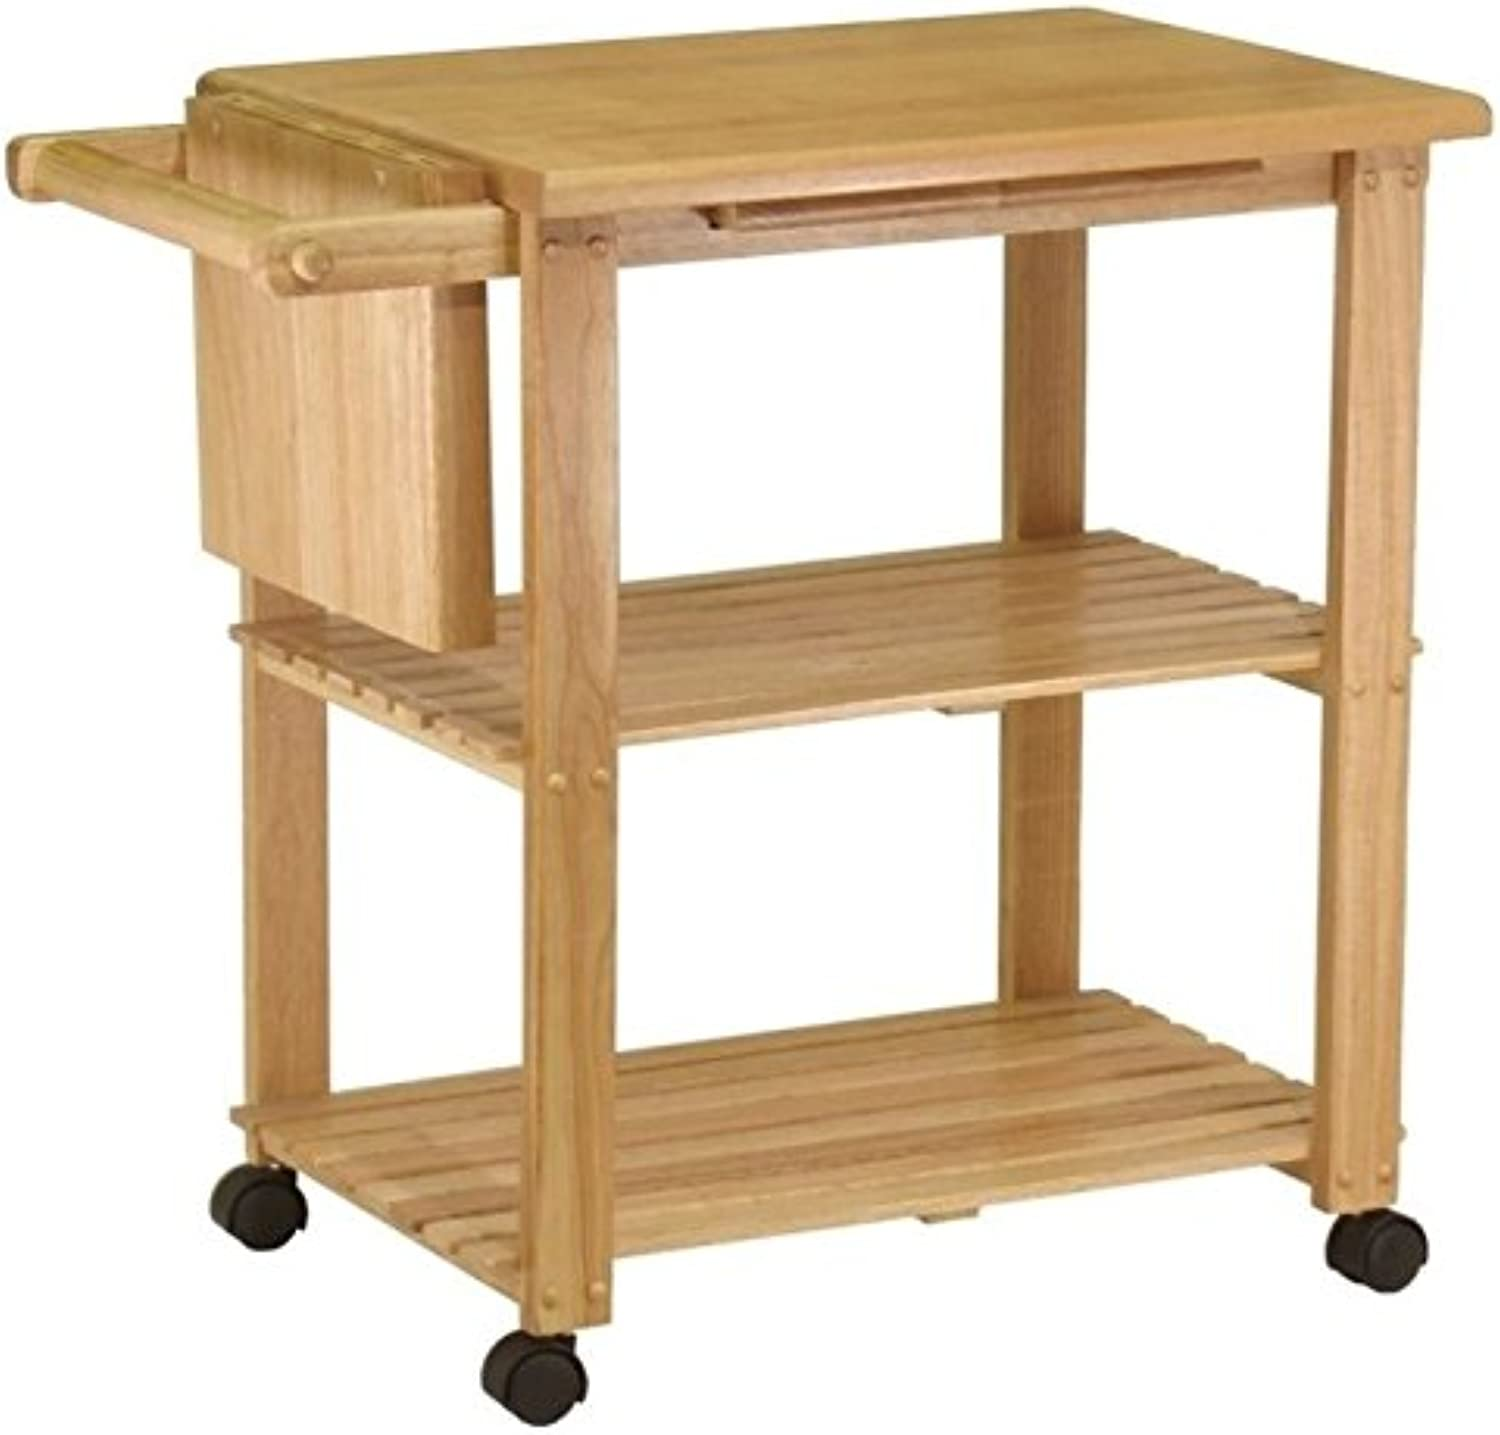 Pemberly Row Utility Butcher Block Kitchen Cart in Natural